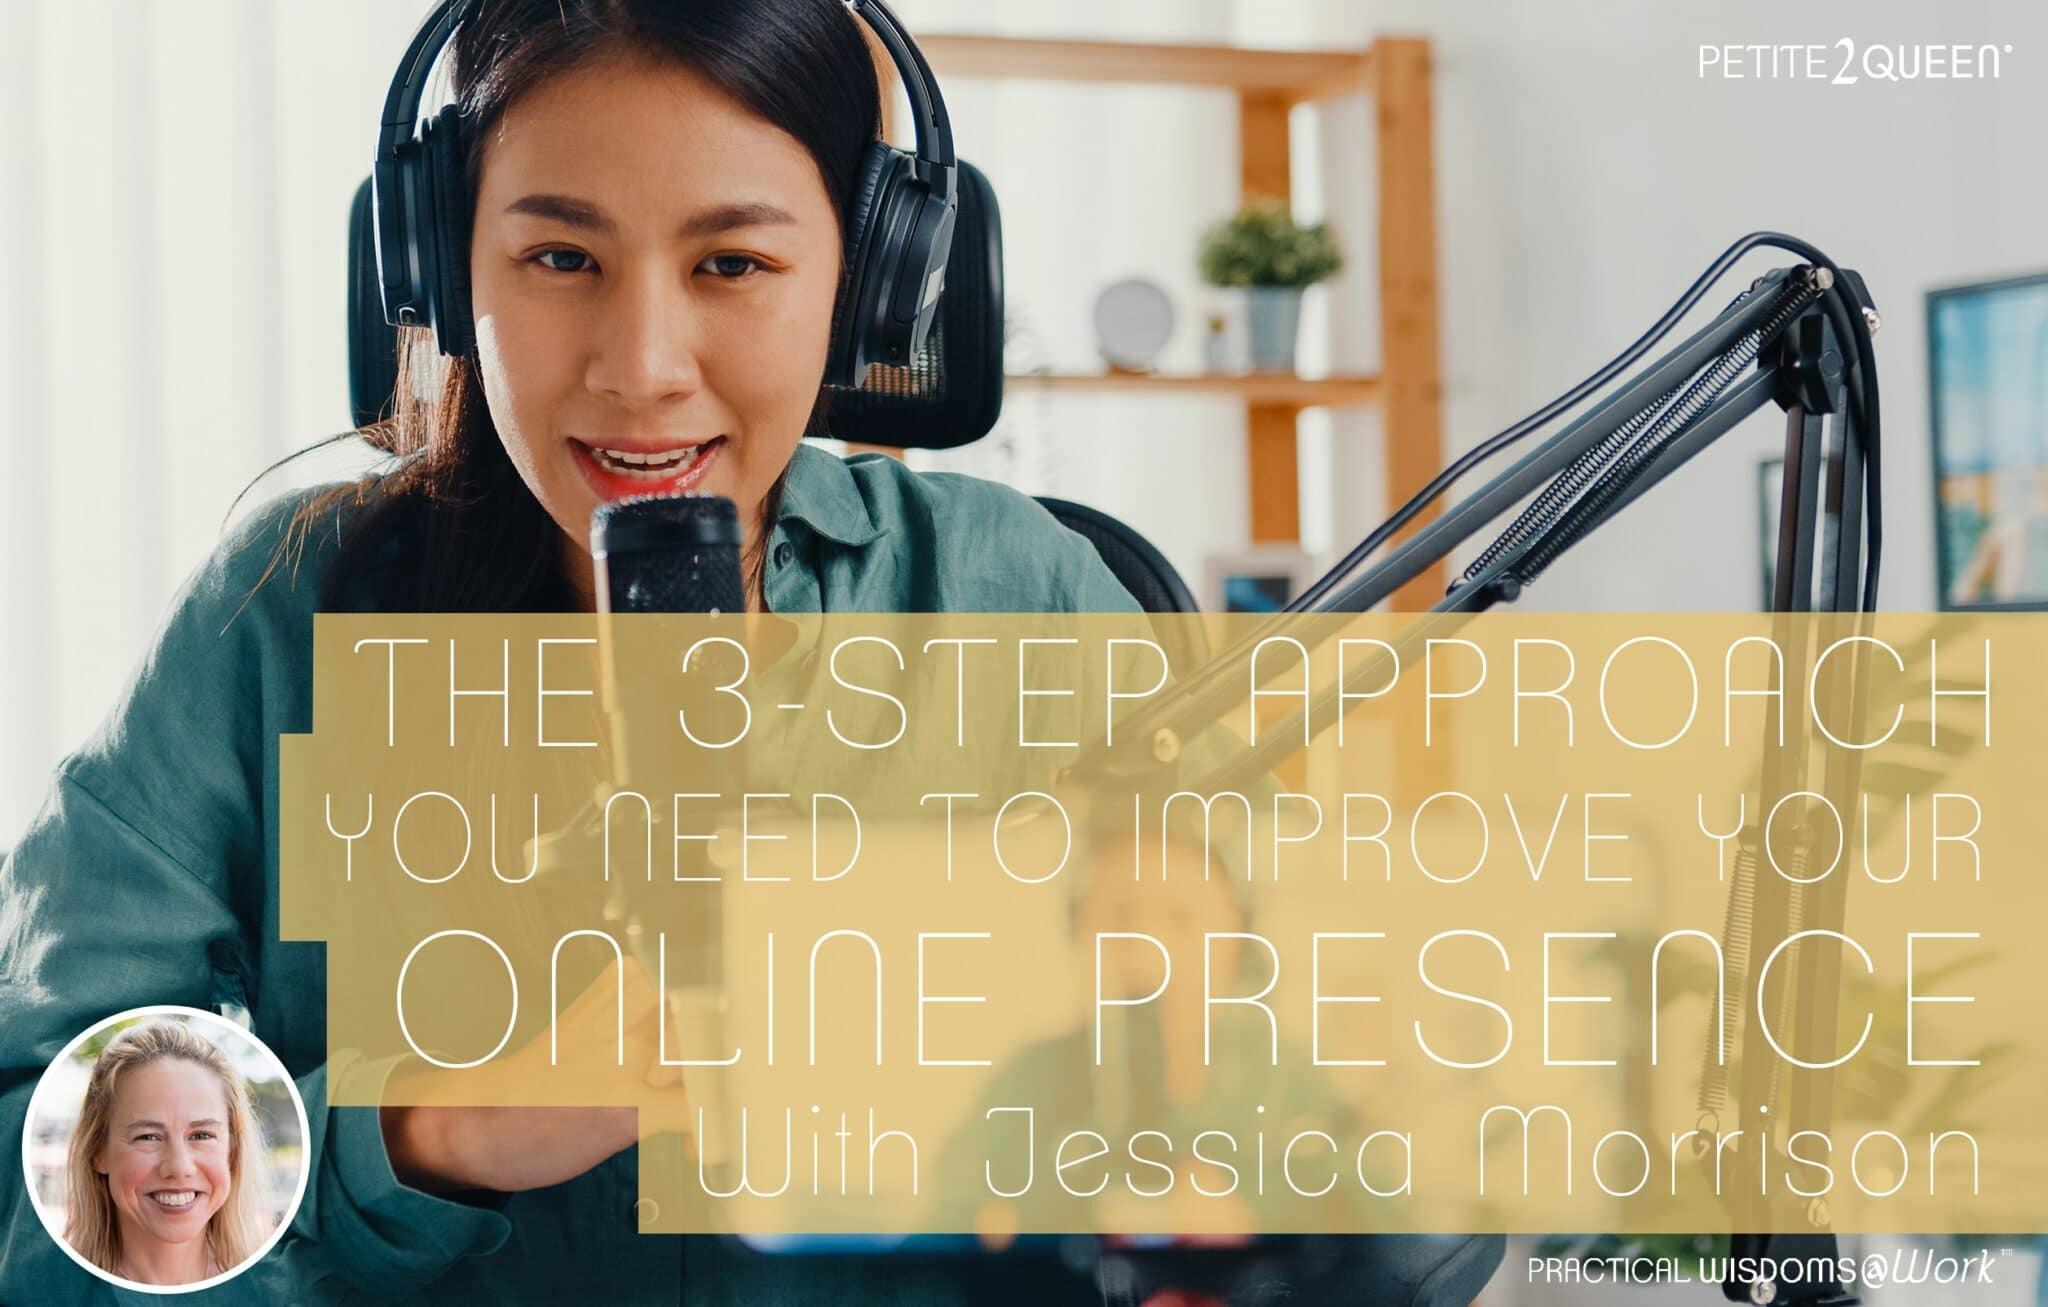 The 3-Step Approach You Need to Improve Your Online Presence